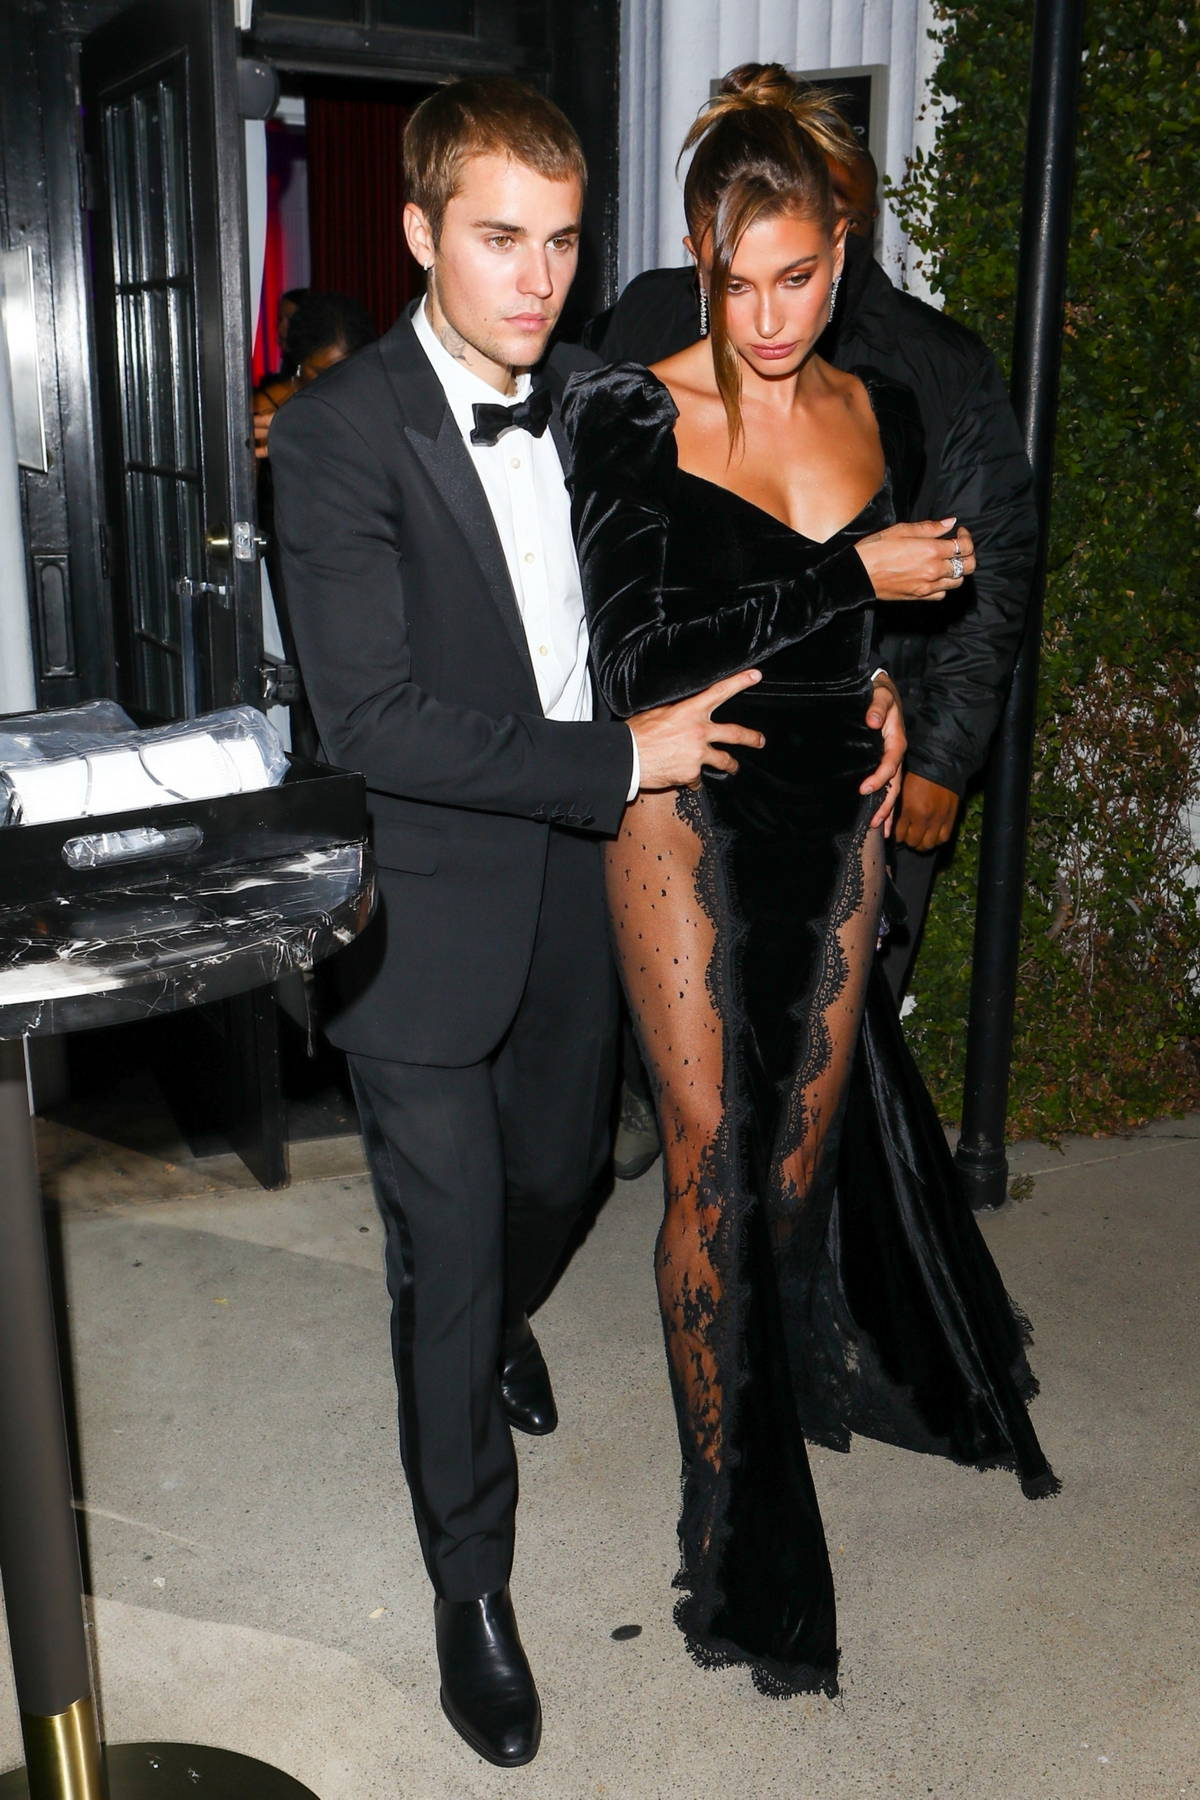 Hailey and Justin Bieber step out to celebrate the grand opening of Justin's art gallery auction in West Hollywood, California